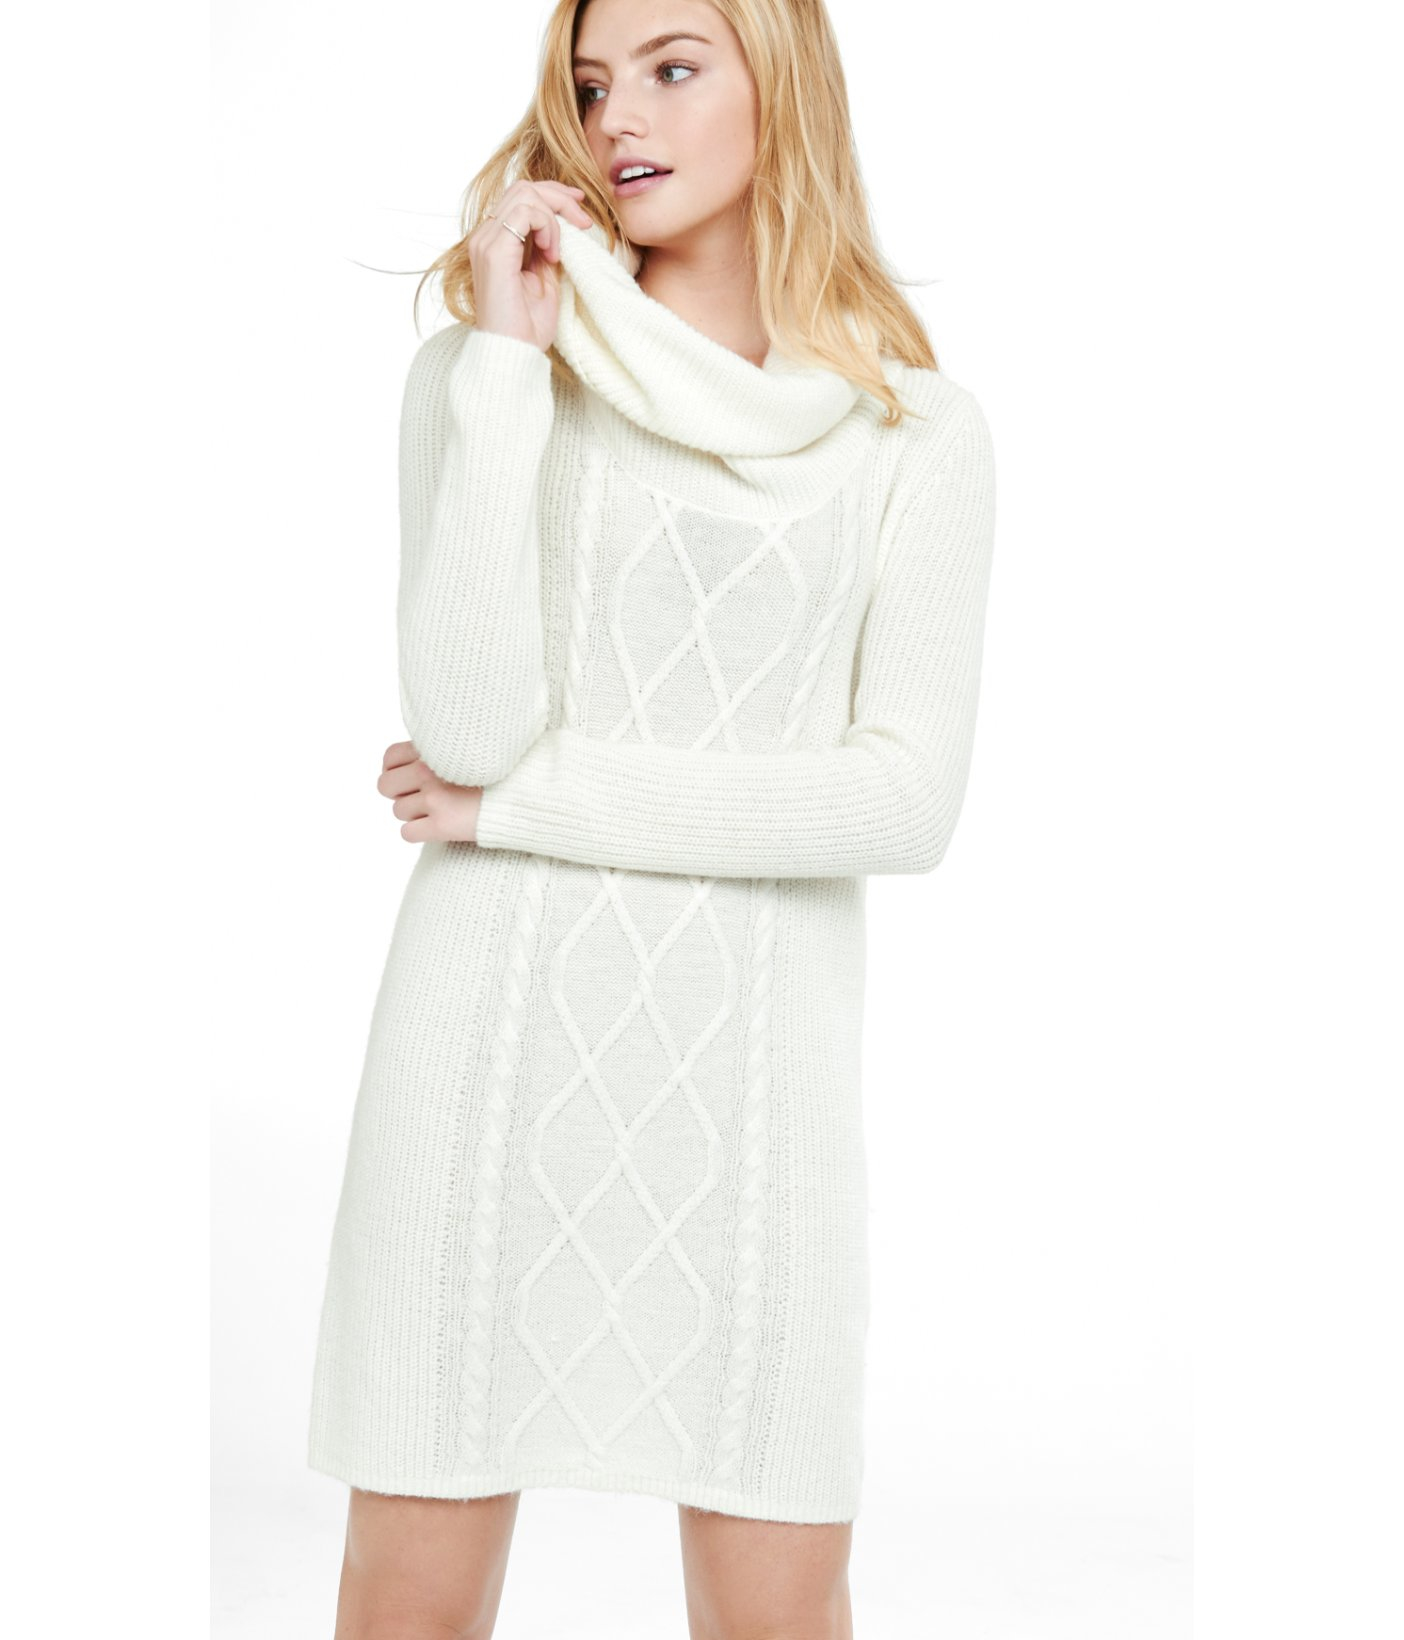 Express Soft Ivory Cowl Neck Mixed Knit Sweater Dress in White | Lyst